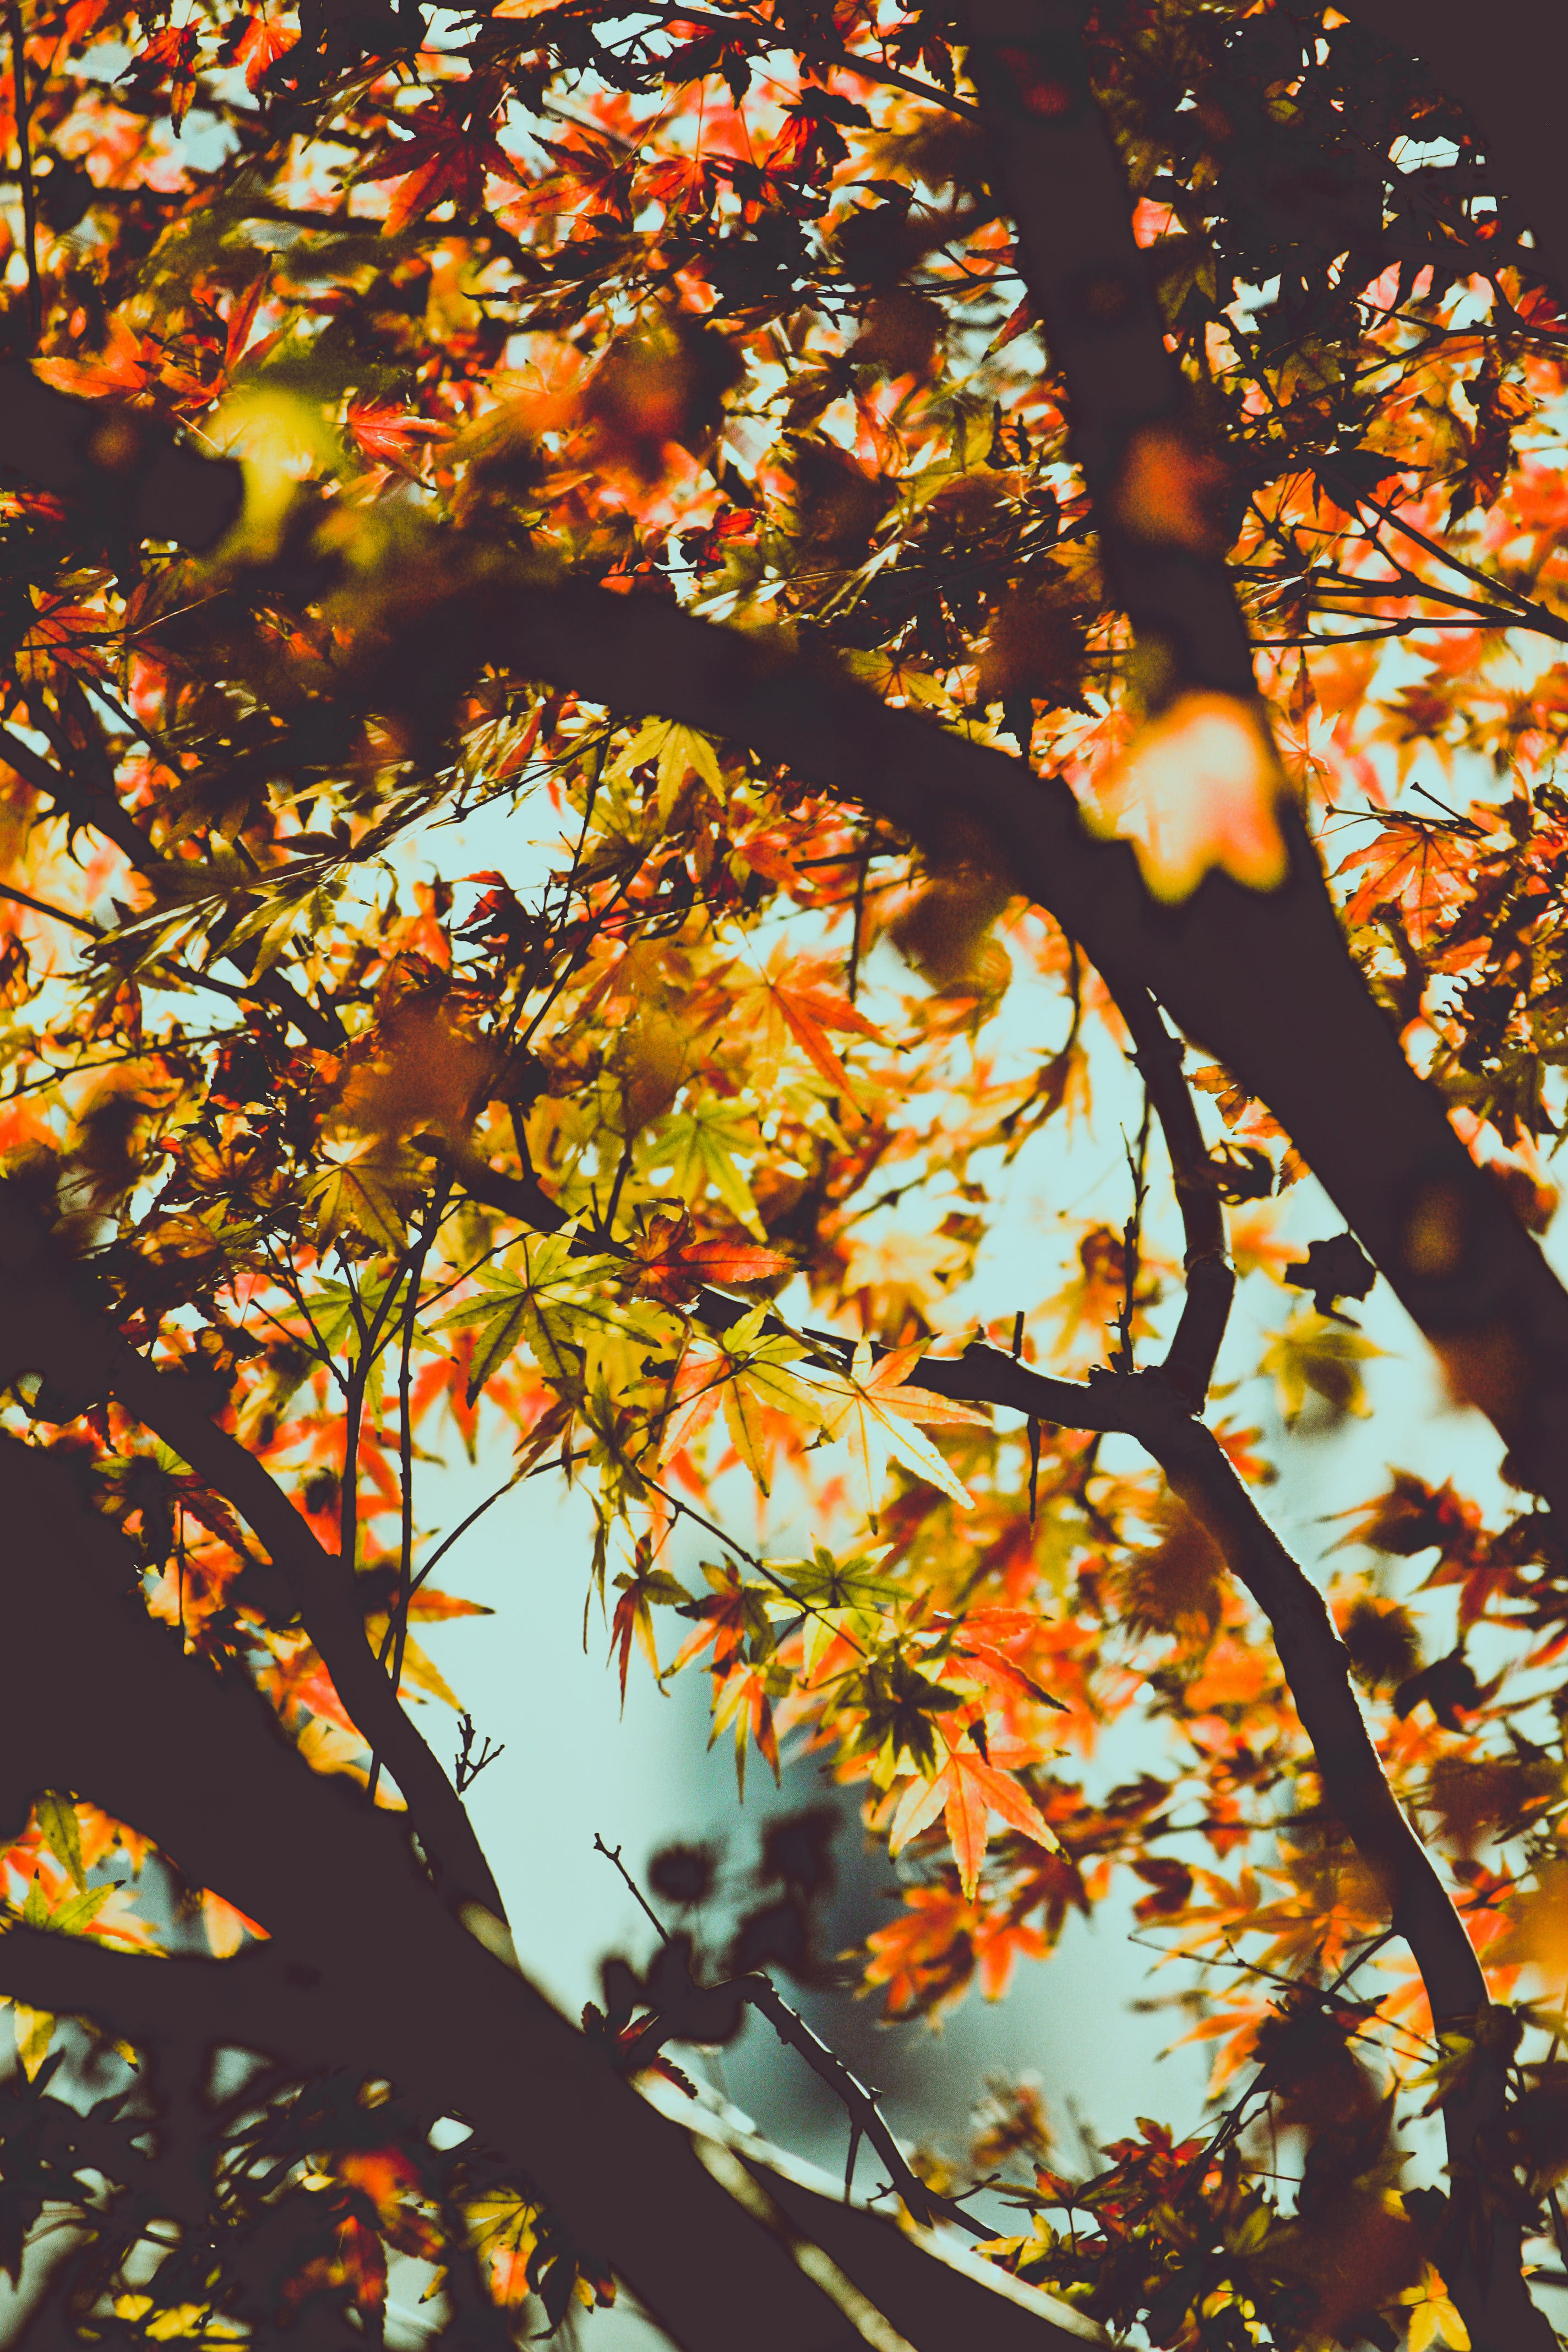 Free stock photo of leaves, tree, autumn, fall